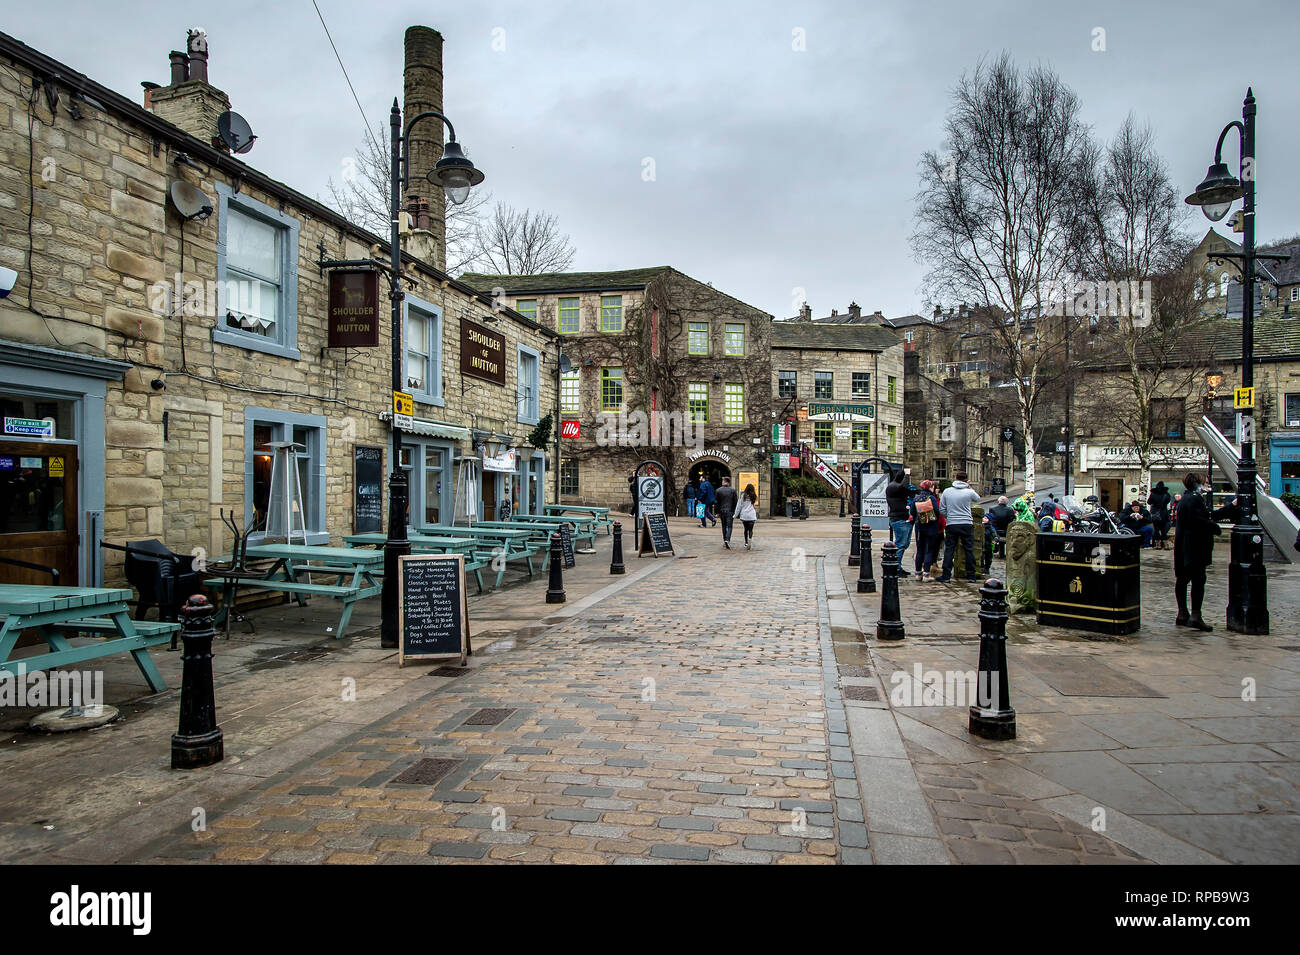 Hebden Bridge is a market town in the Upper Calder Valley in West Yorkshire, England. The town sits on the River Calder and has the Rochdale Canal ser - Stock Image